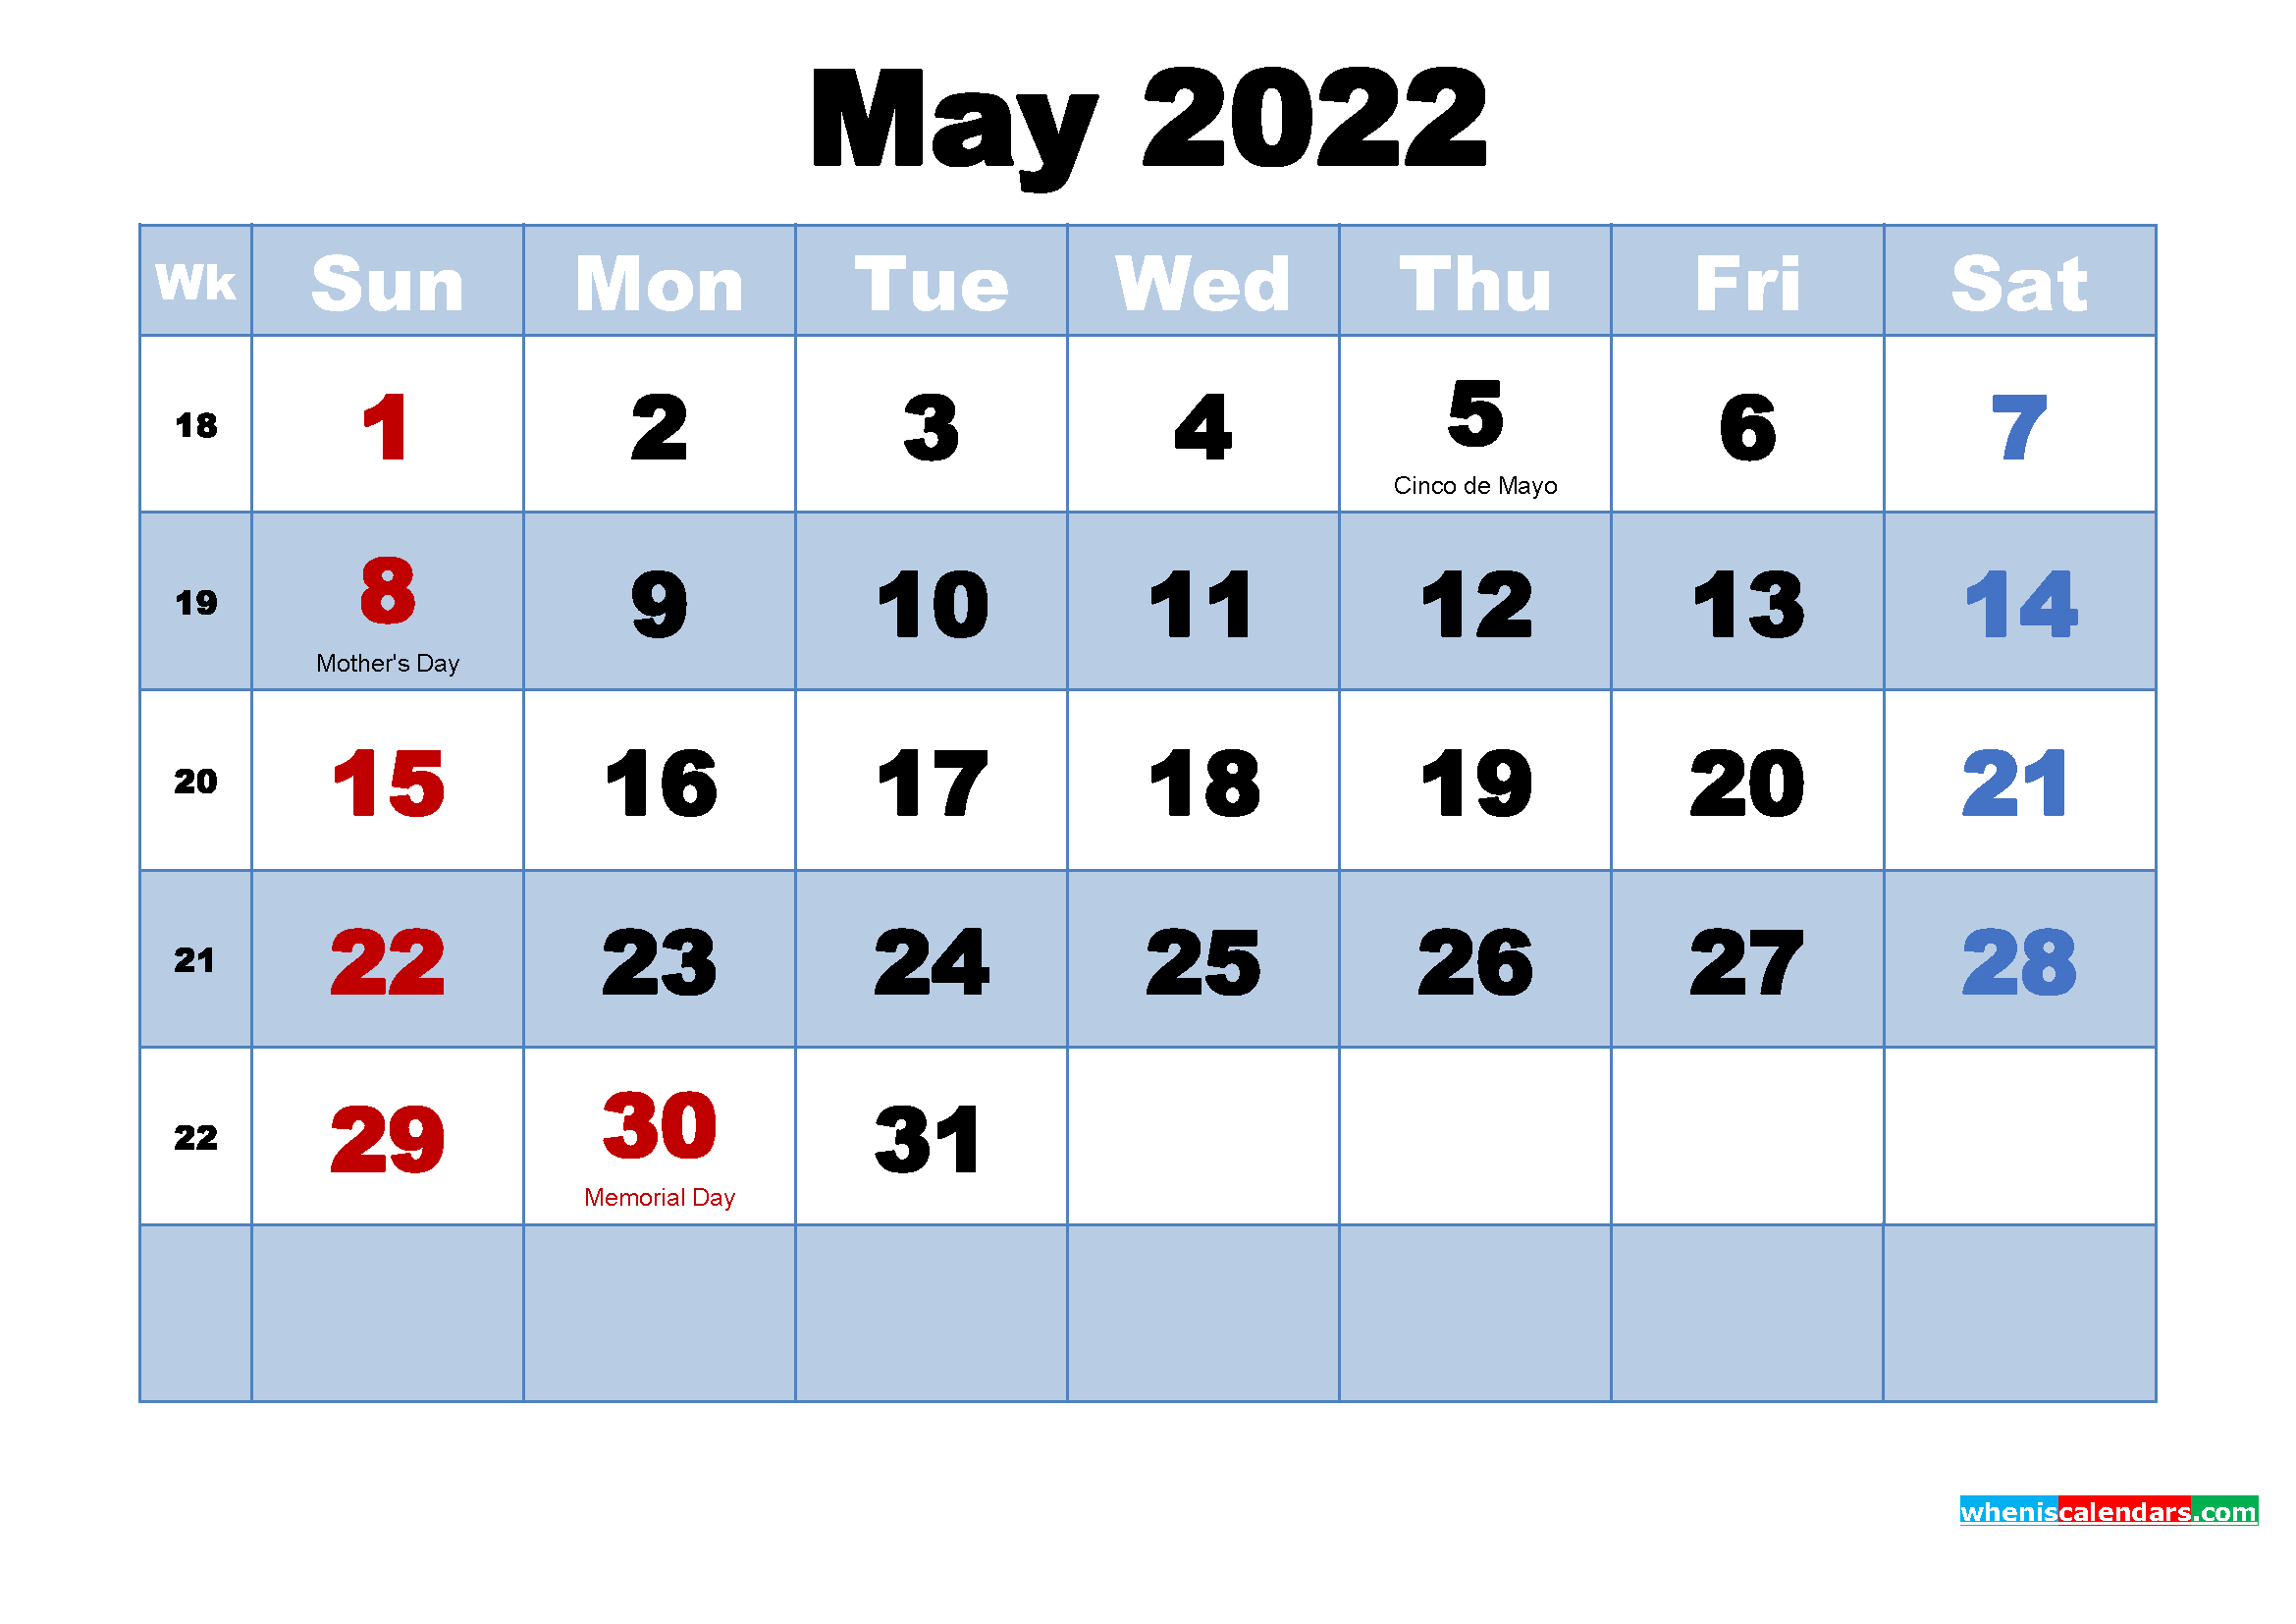 May 2022 Calendar Wallpaper High Resolution